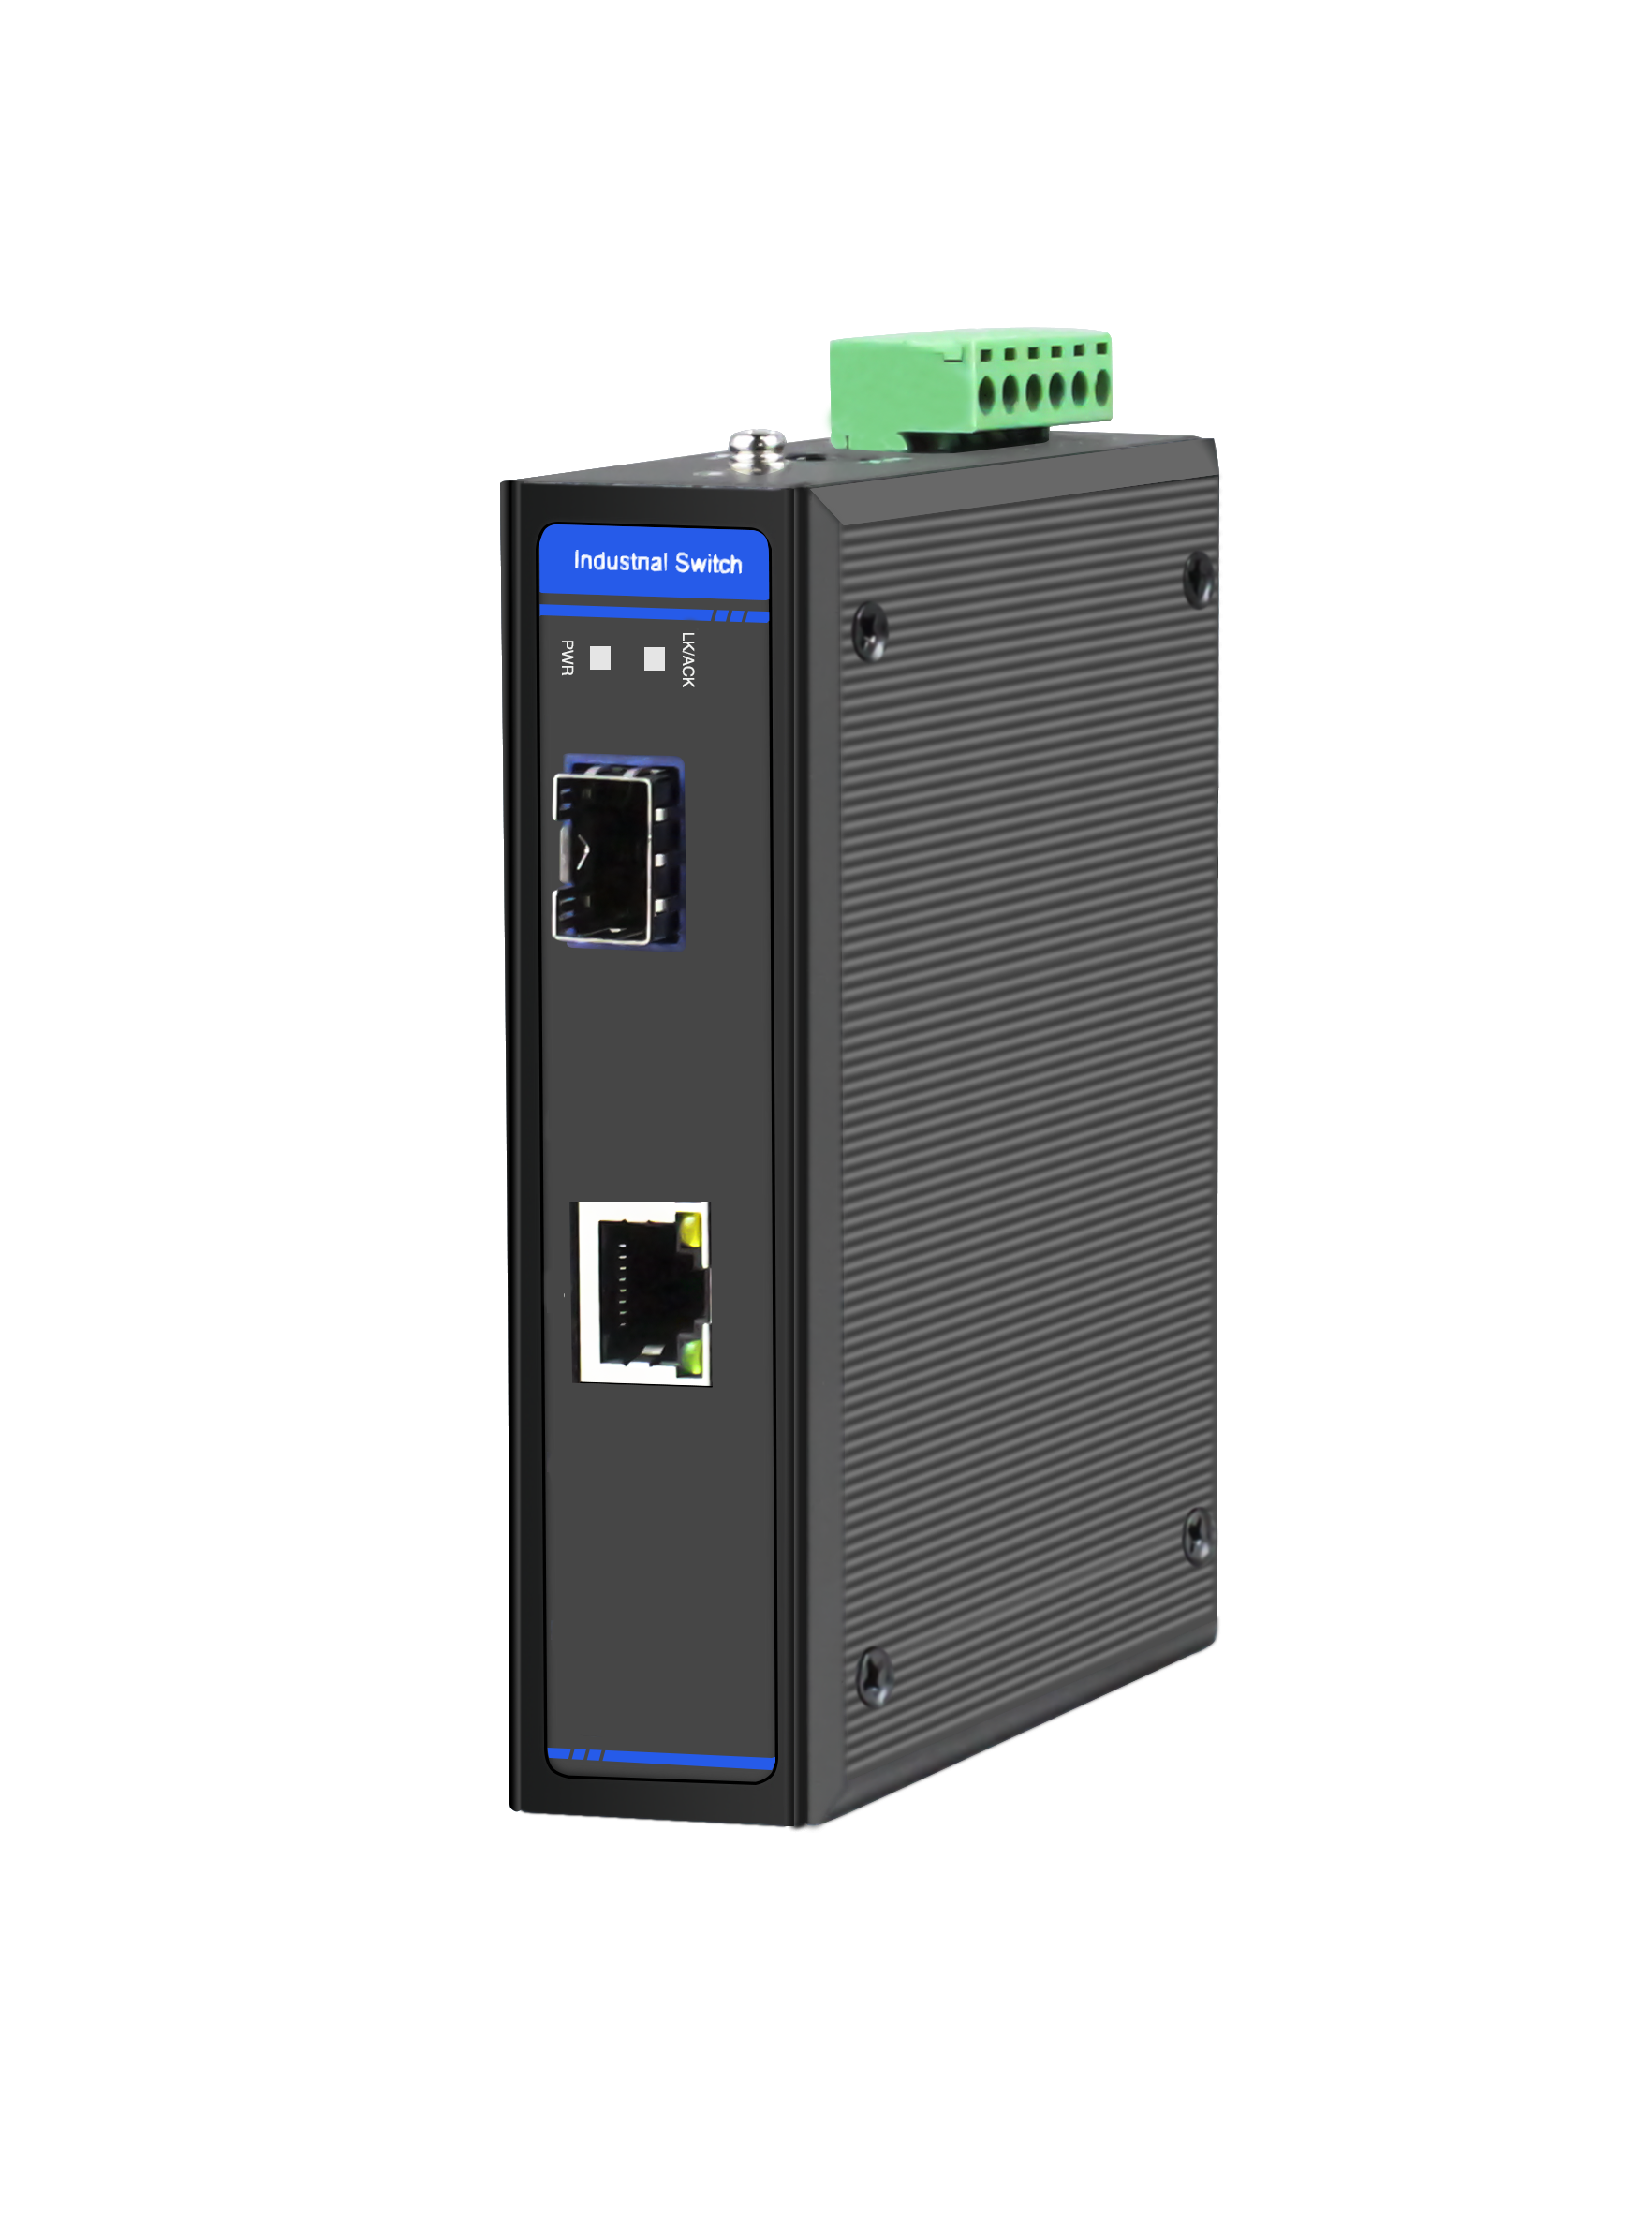 1 x 10/100/1000M Base-TX POE/NON-POE Industrial Ethernet Switch